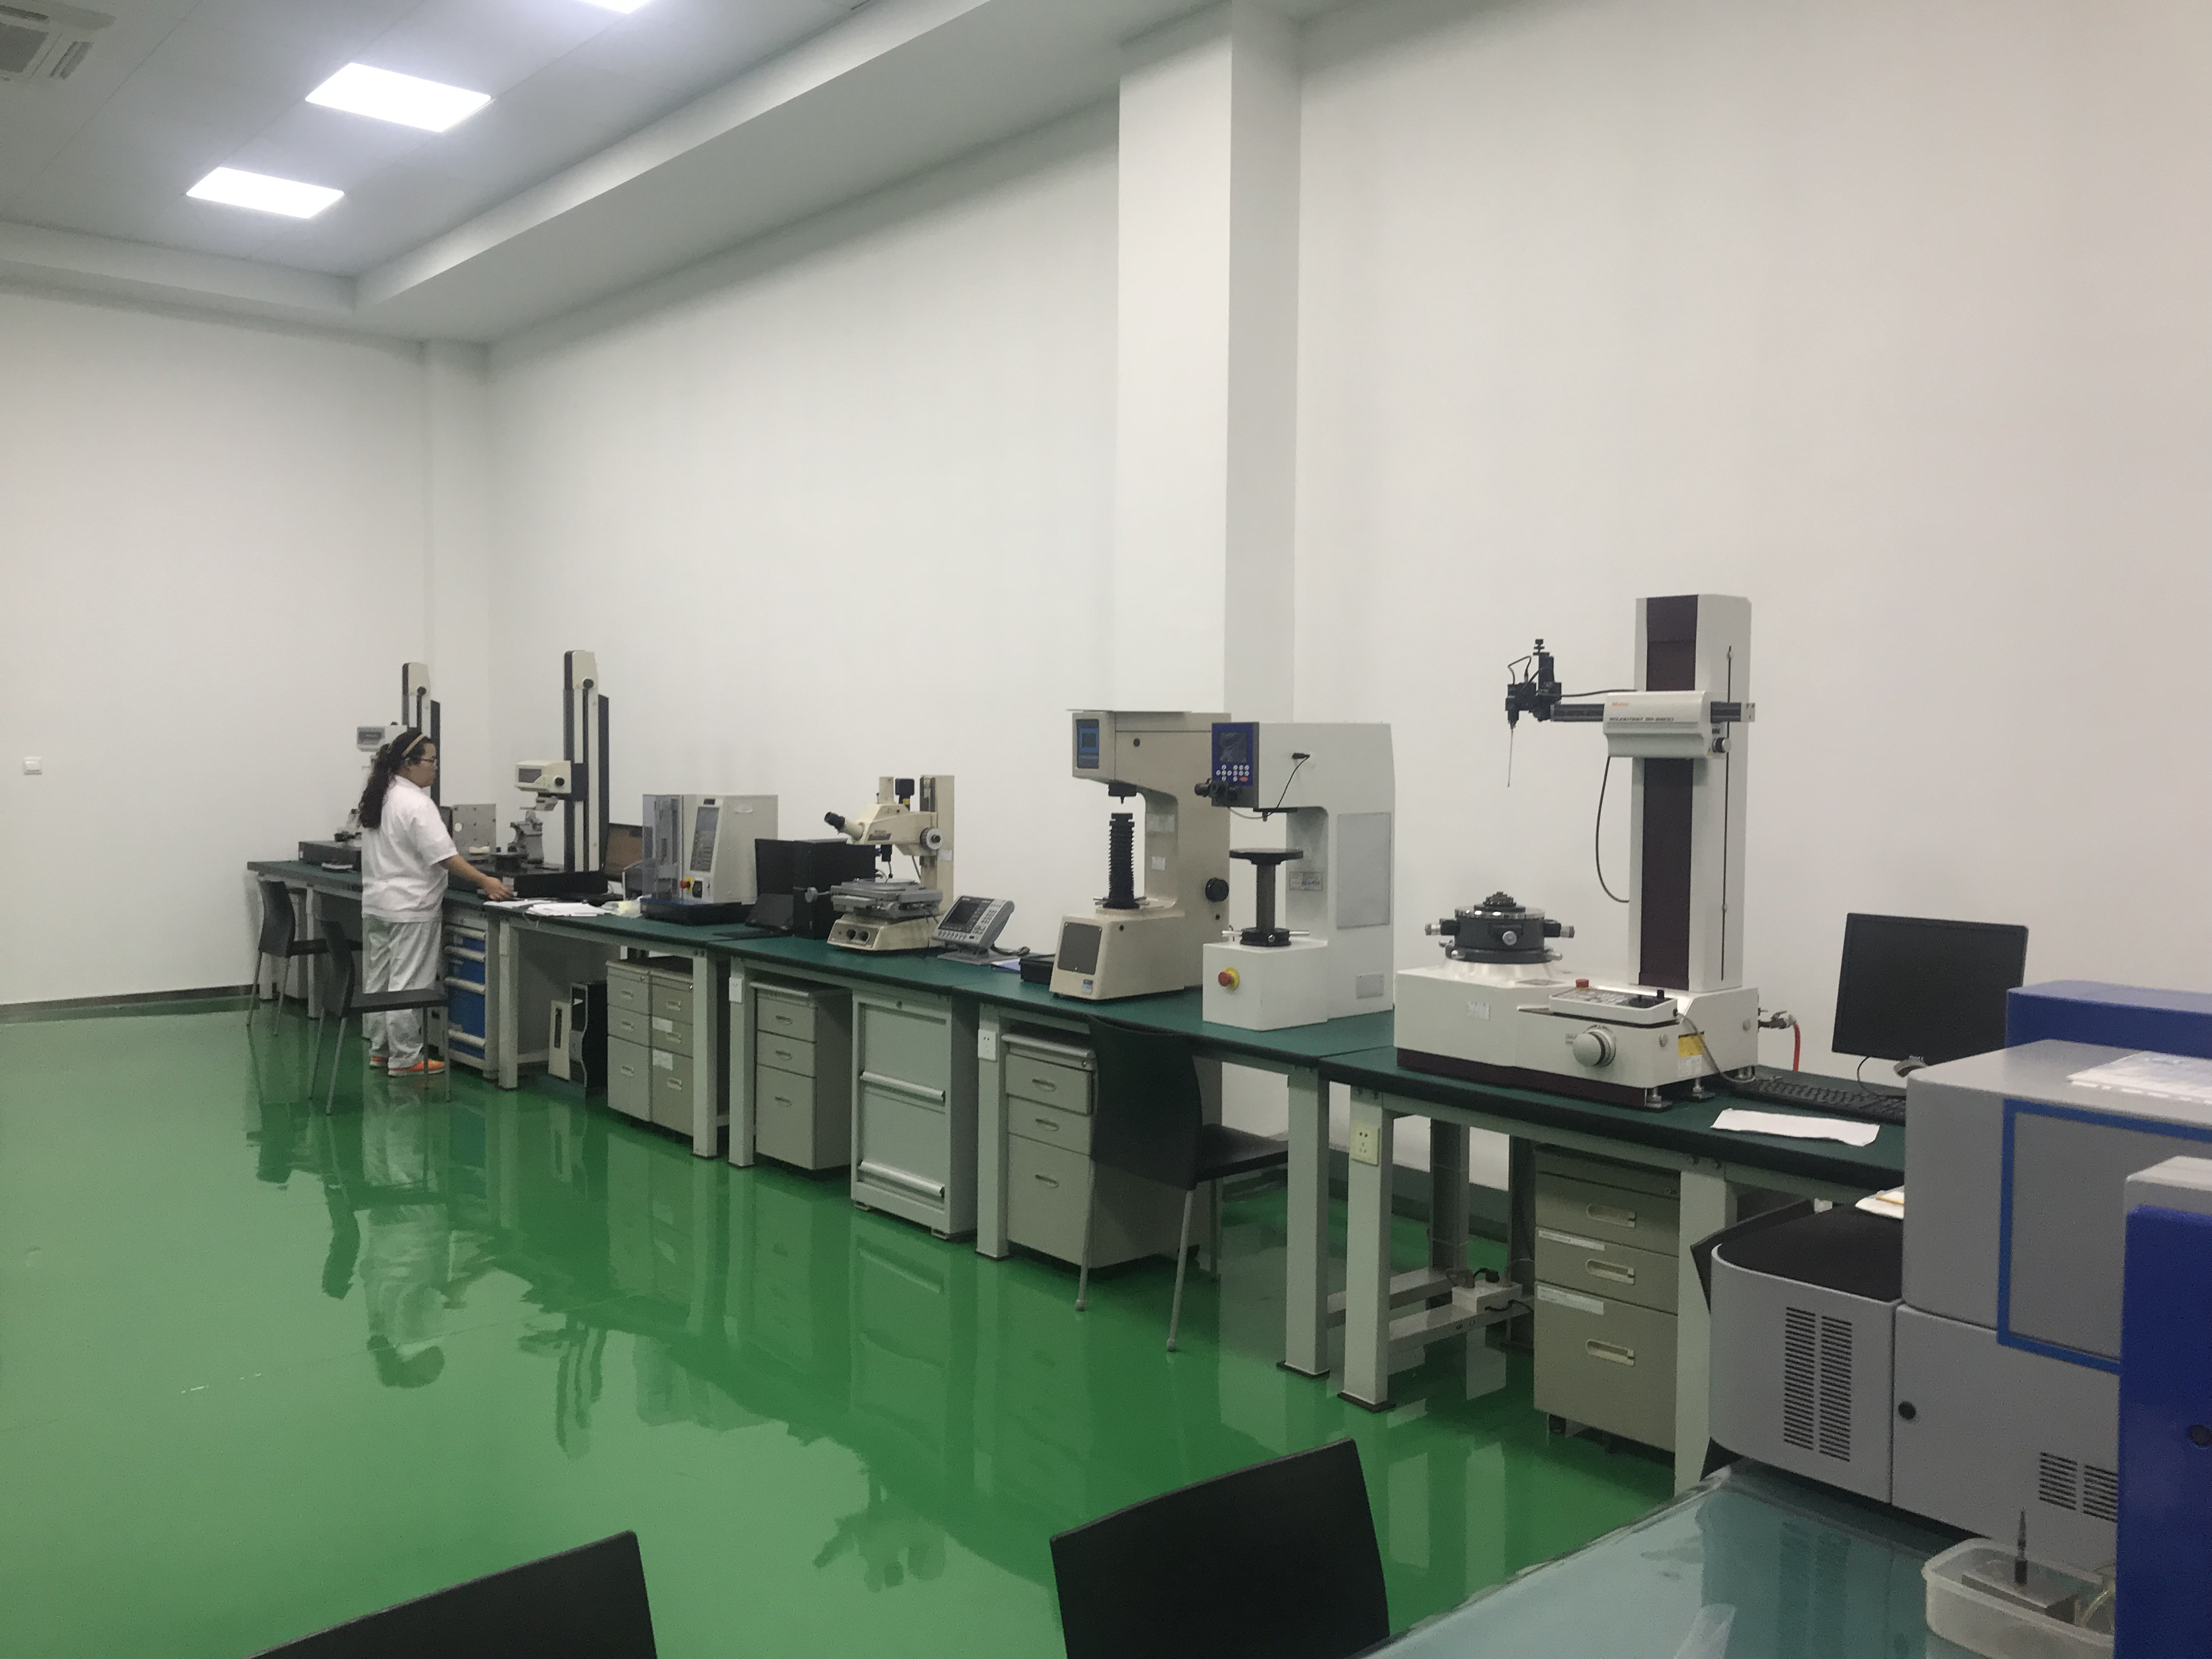 材料及模块性能过程测量设备Material and module performance process measurement equipment